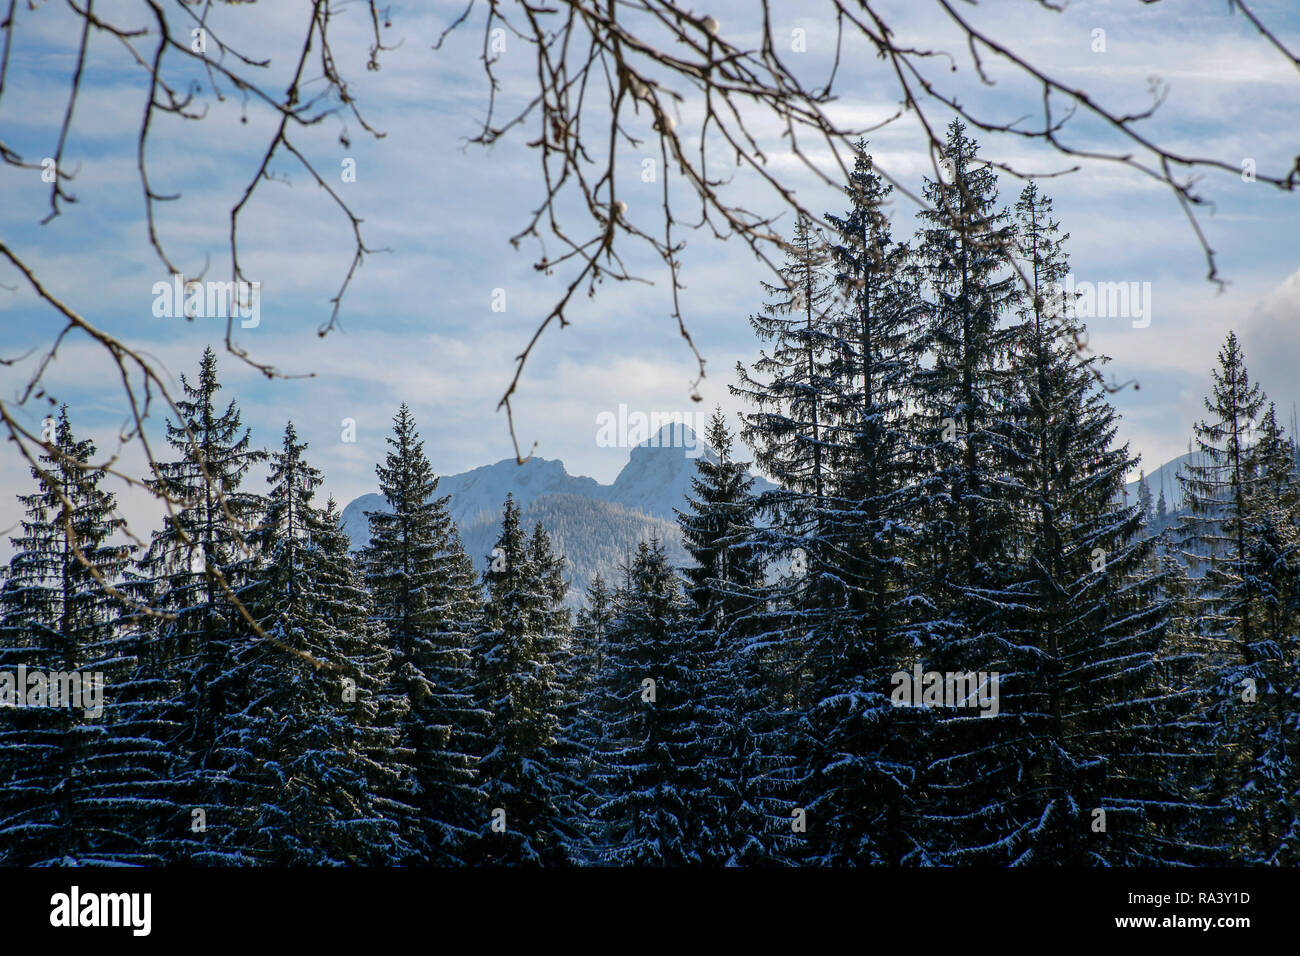 Giewont (peak in the Tatra Mountains) behind spruces in the winter scenery - Stock Image